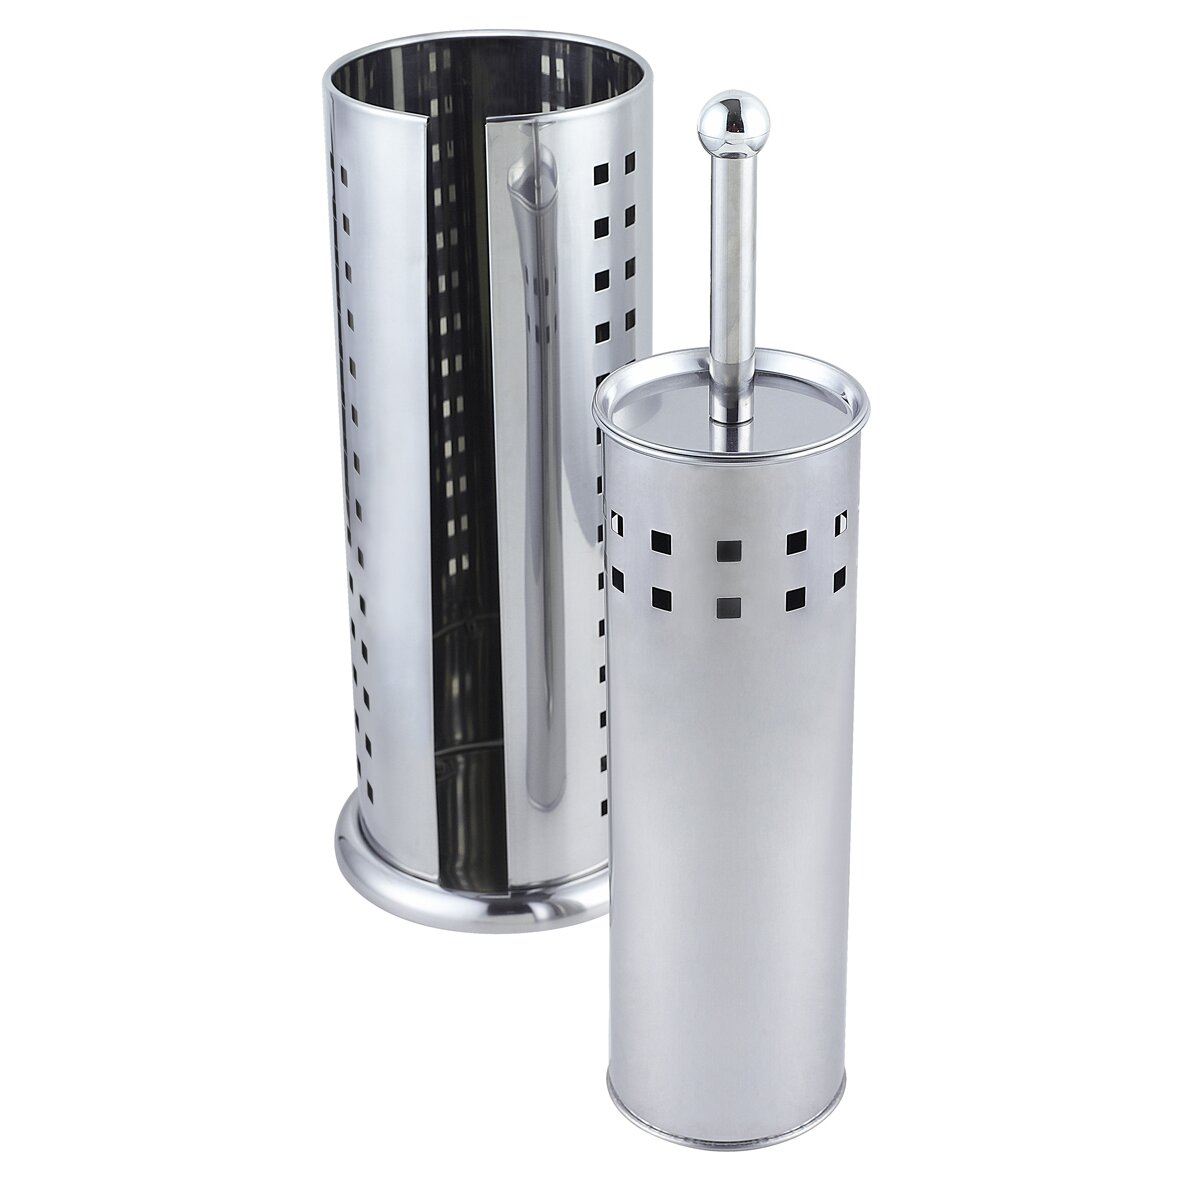 Sabichi spare free standing toilet roll and brush holder Glass toilet roll holder